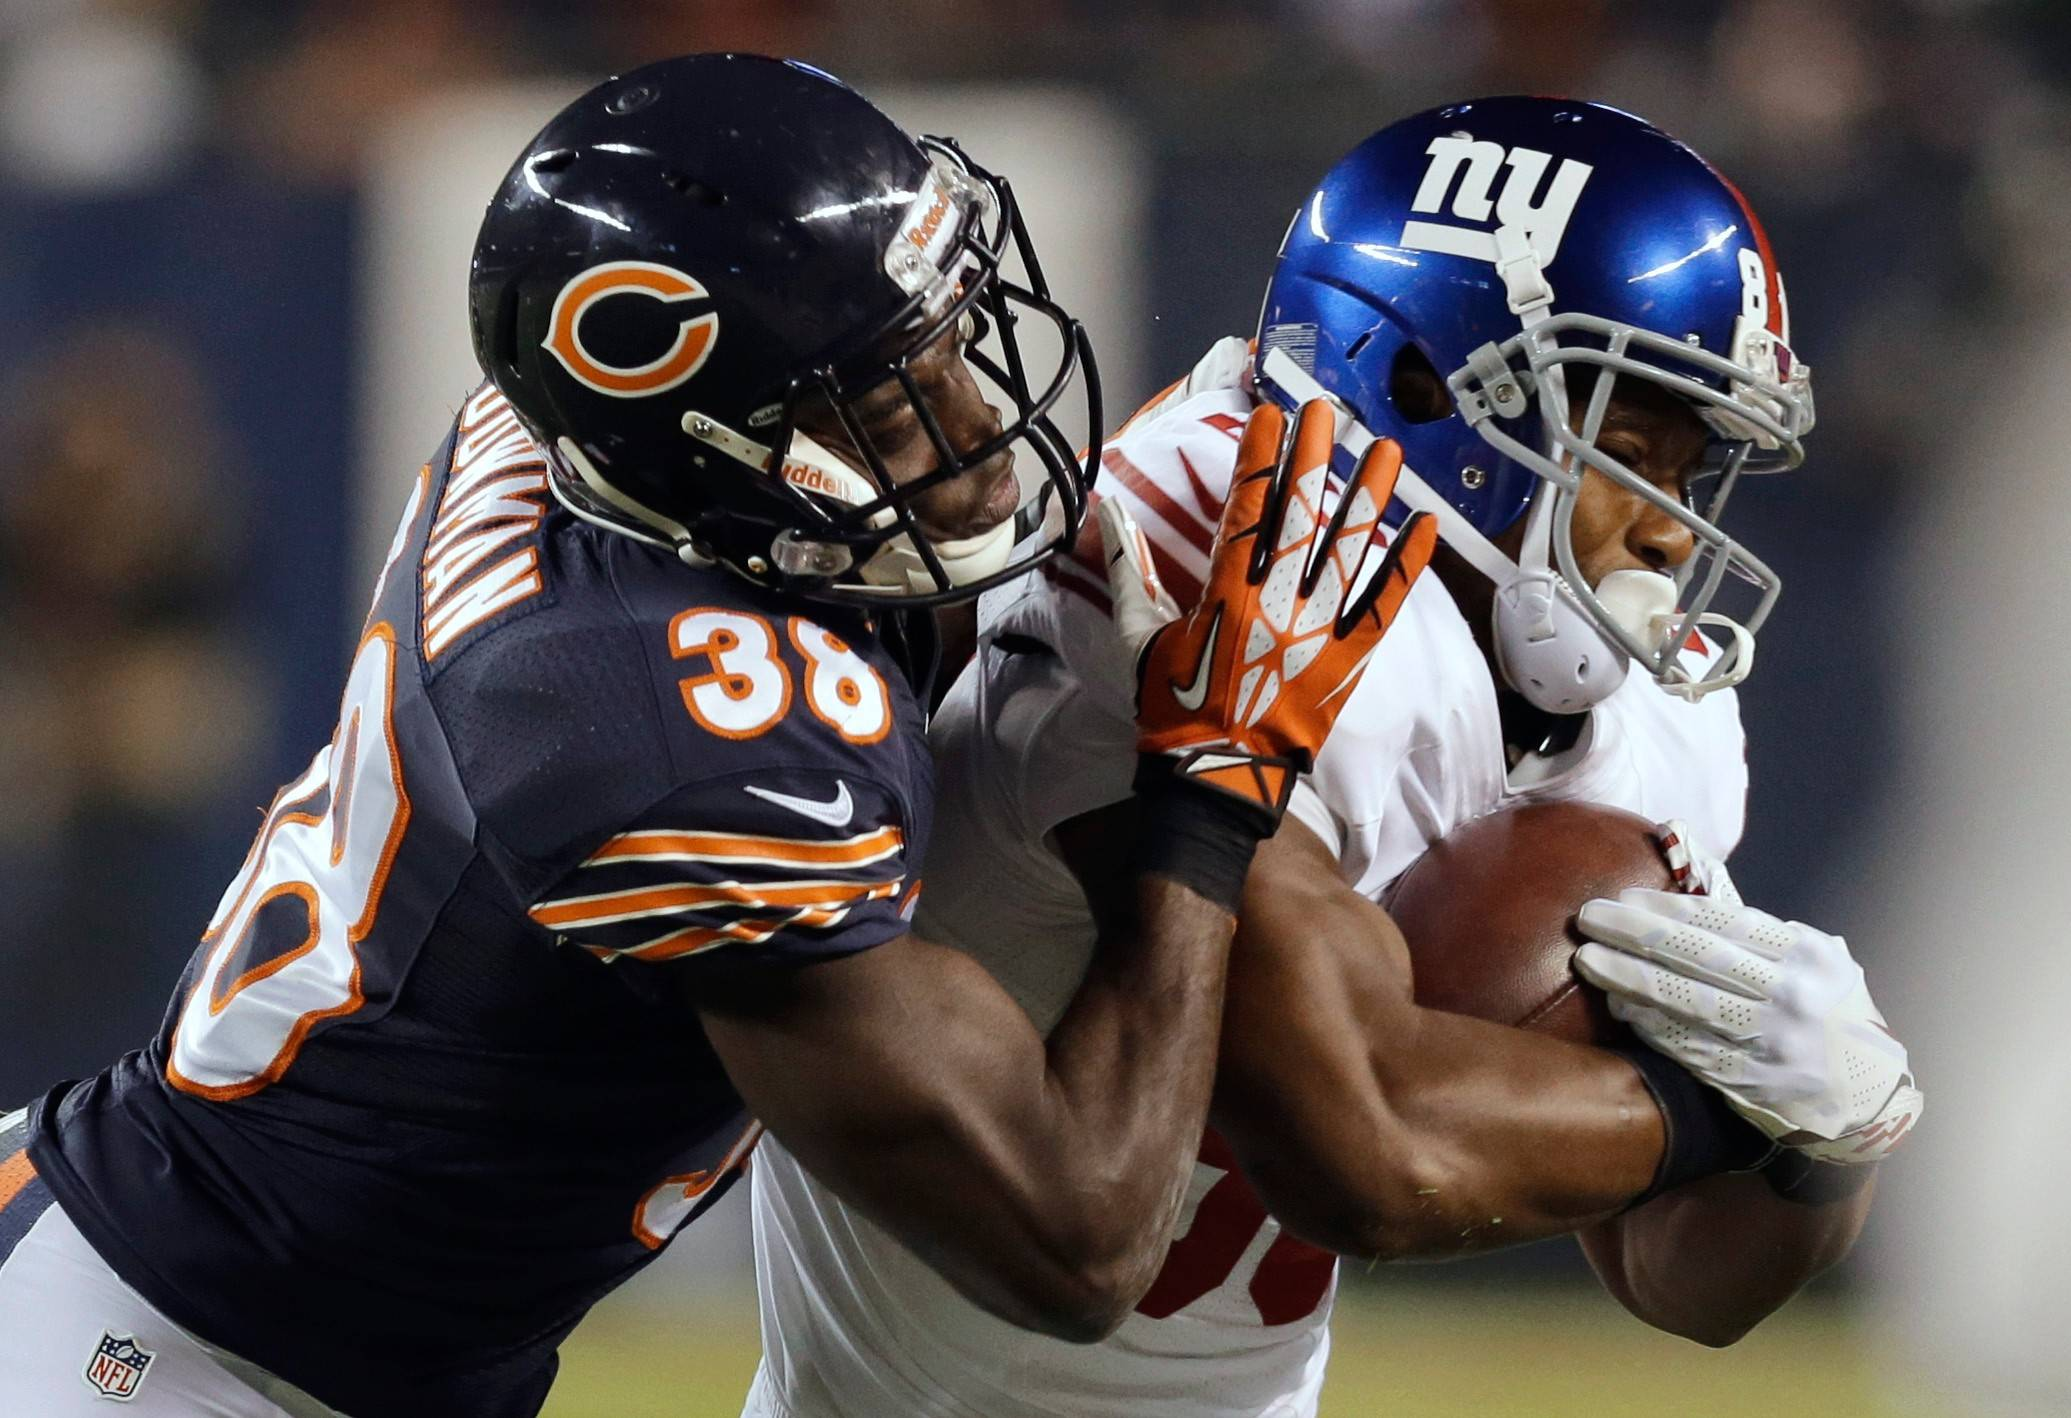 Chicago Bears sign former Pro Bowl ide receiver Victor Cruz